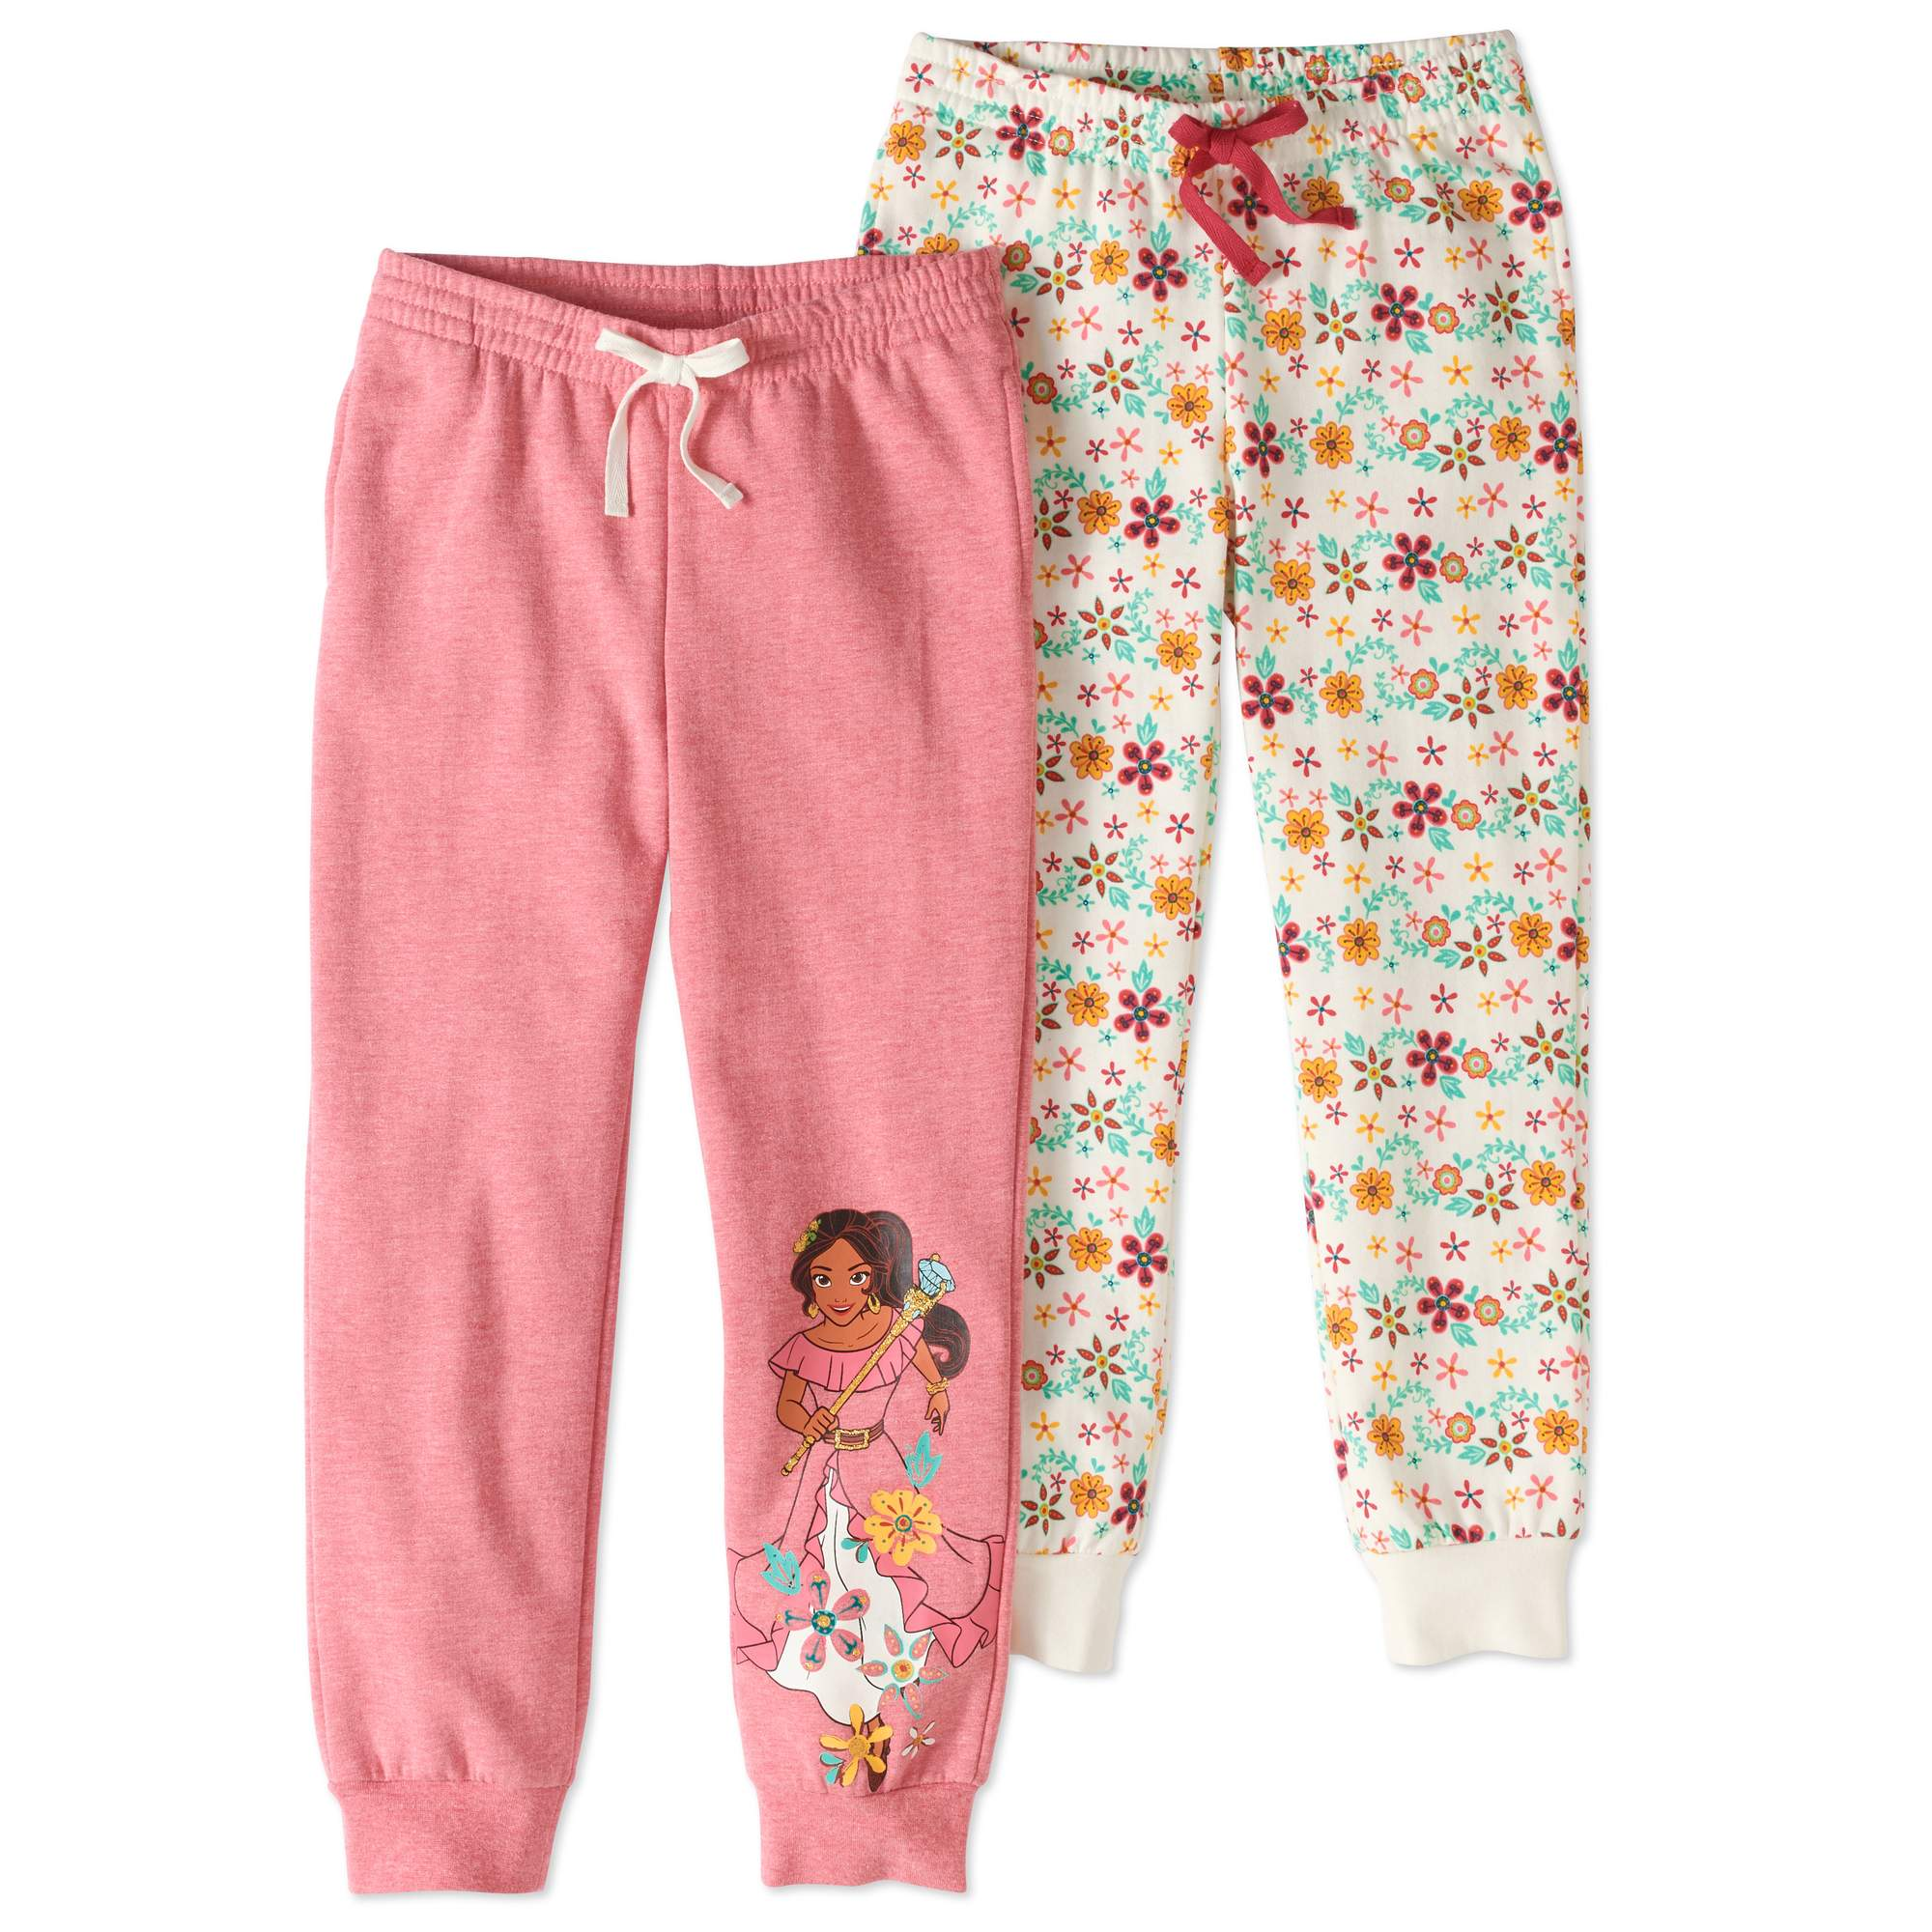 Elena Girls' Jogger Pants 2-Pack Set